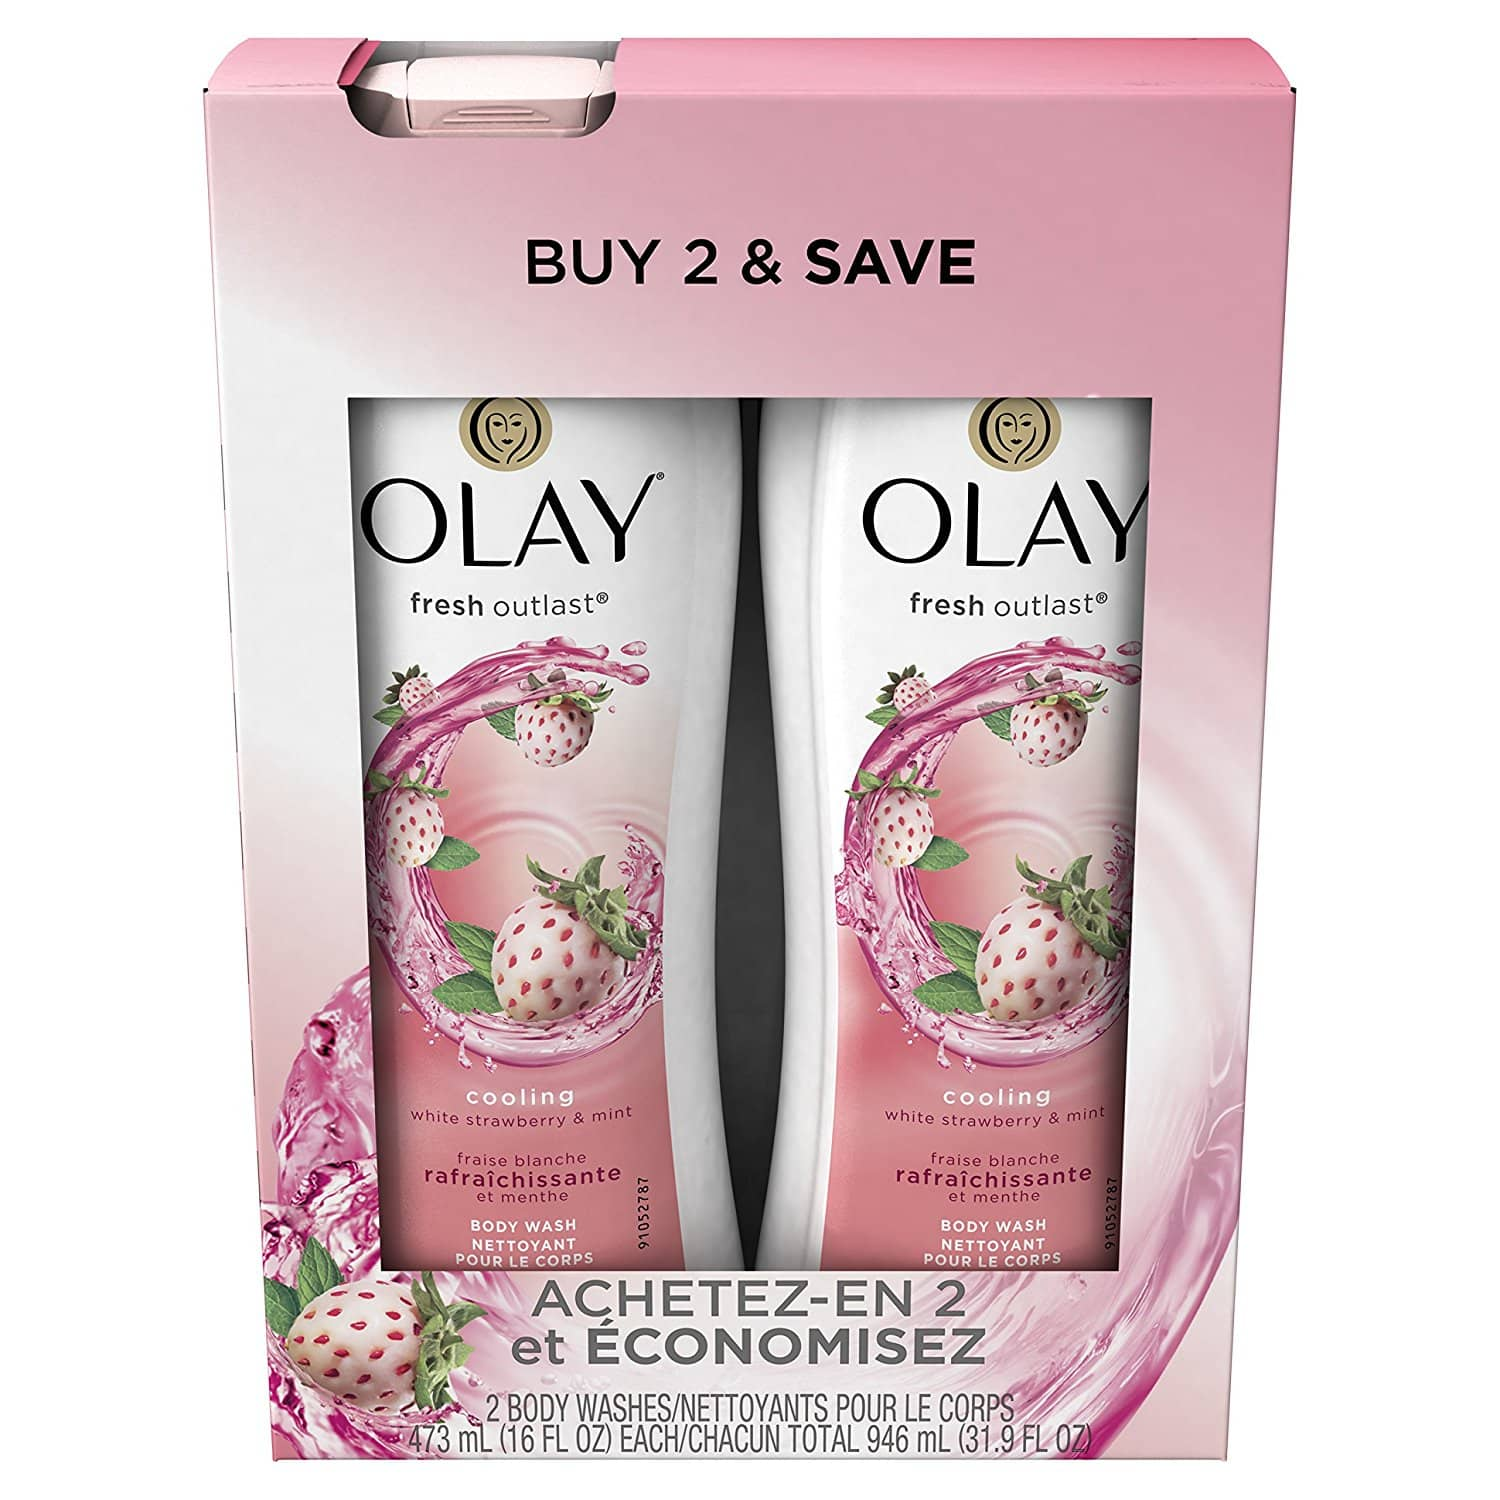 Add-on: Olay Fresh Outlast Cooling White Strawberry & Mint Body Wash, 16 Fl Oz, 2 Count, $4 AC